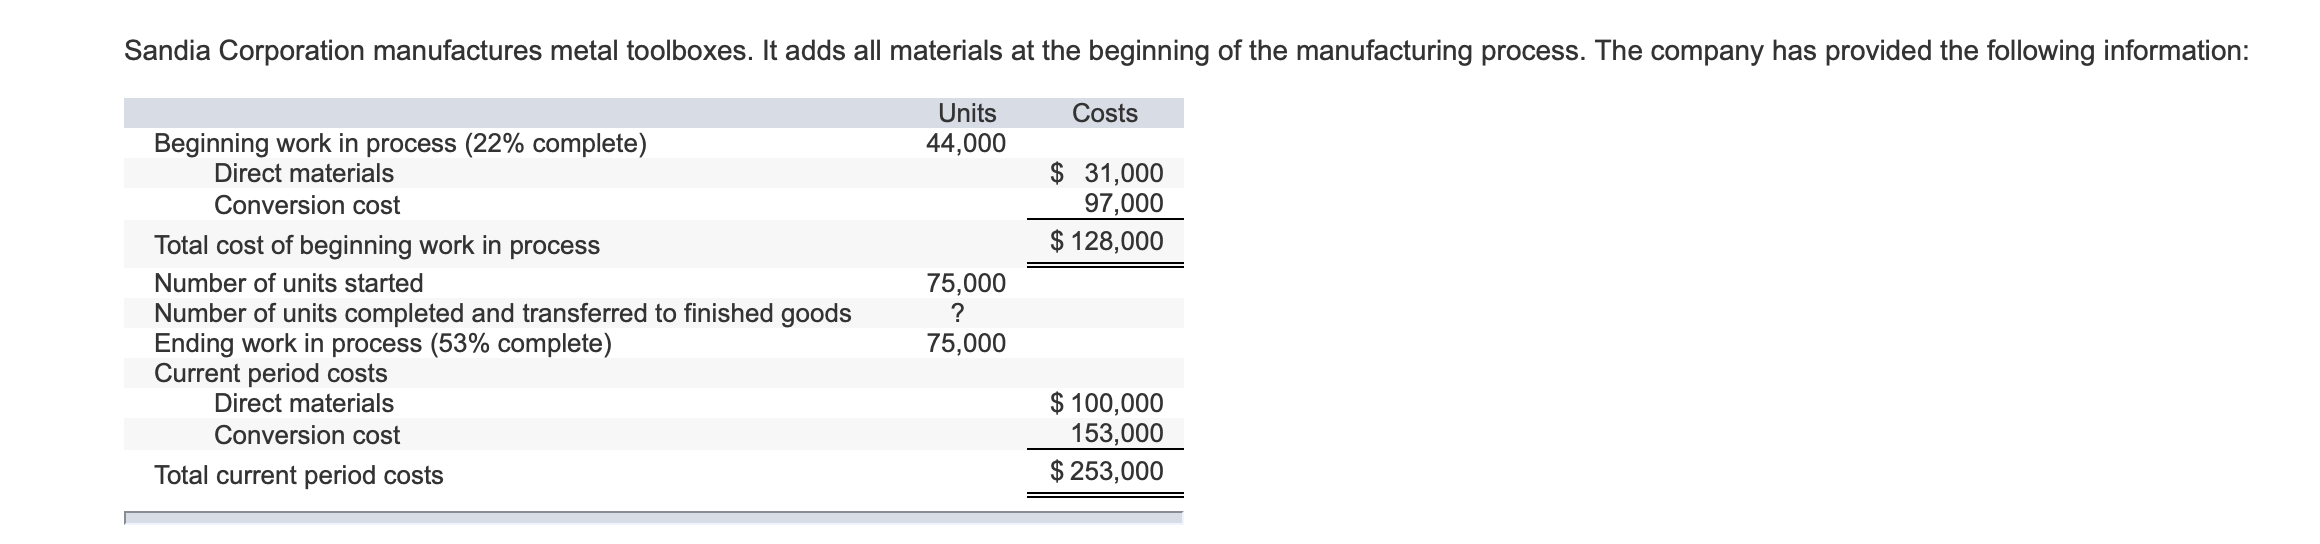 Sandia Corporation manufactures metal toolboxes. It adds all materials at the beginning of the manufacturing process. The company has provided the following information: Units Costs 44,000 Beginning work in process (22% complete) Direct materials $ 31,000 97,000 $128,000 Conversion cost Total cost of beginning work in process 75,000 ? Number of units started Number of units completed and transferred to finished goods Ending work in process (53% complete) Current period costs Direct materials 75,000 $100,000 153,000 $ 253,000 Conversion cost Total current period costs